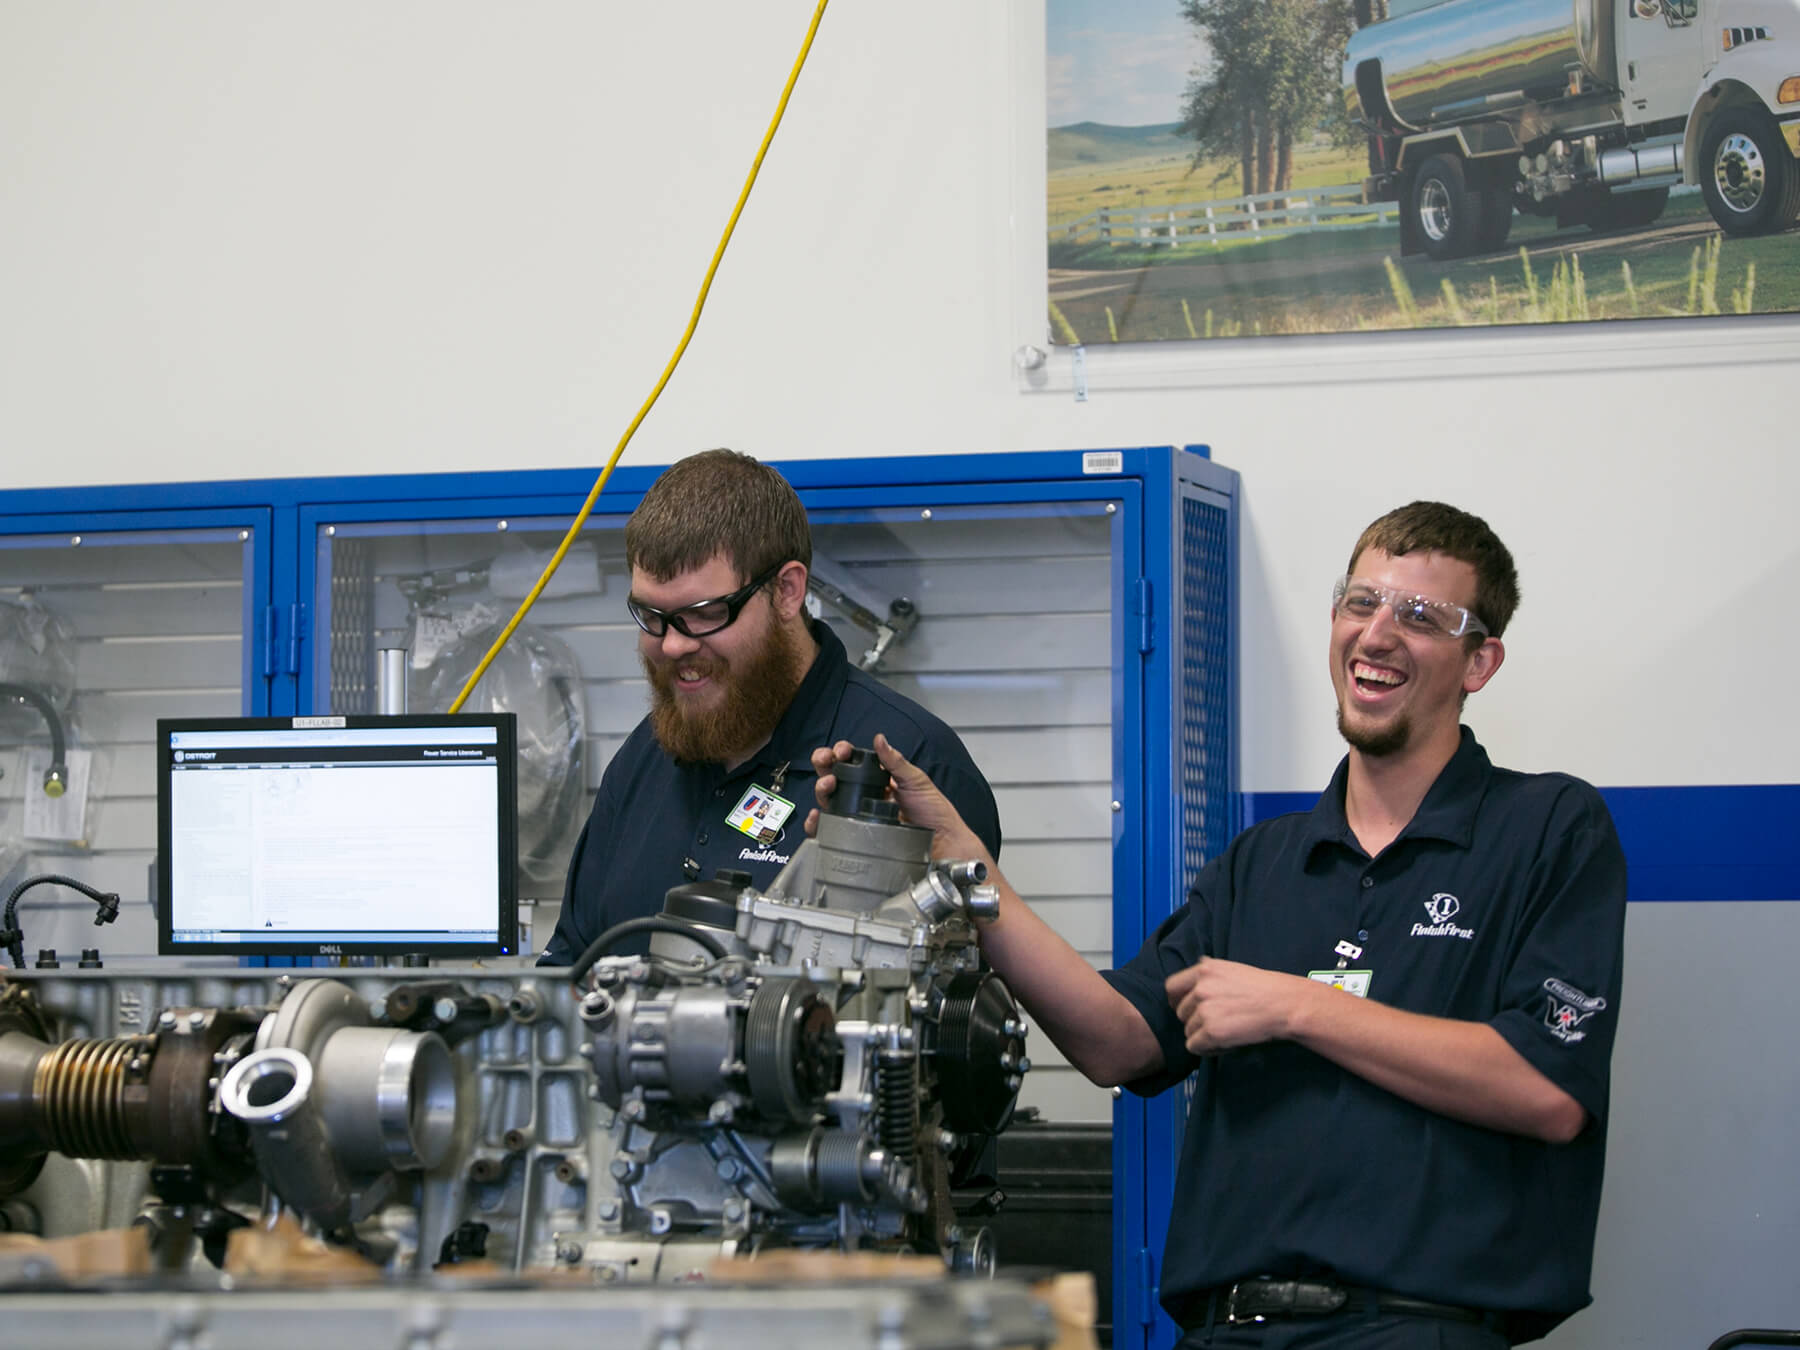 Daimler students laughing while working on an engine at Avondale Campus